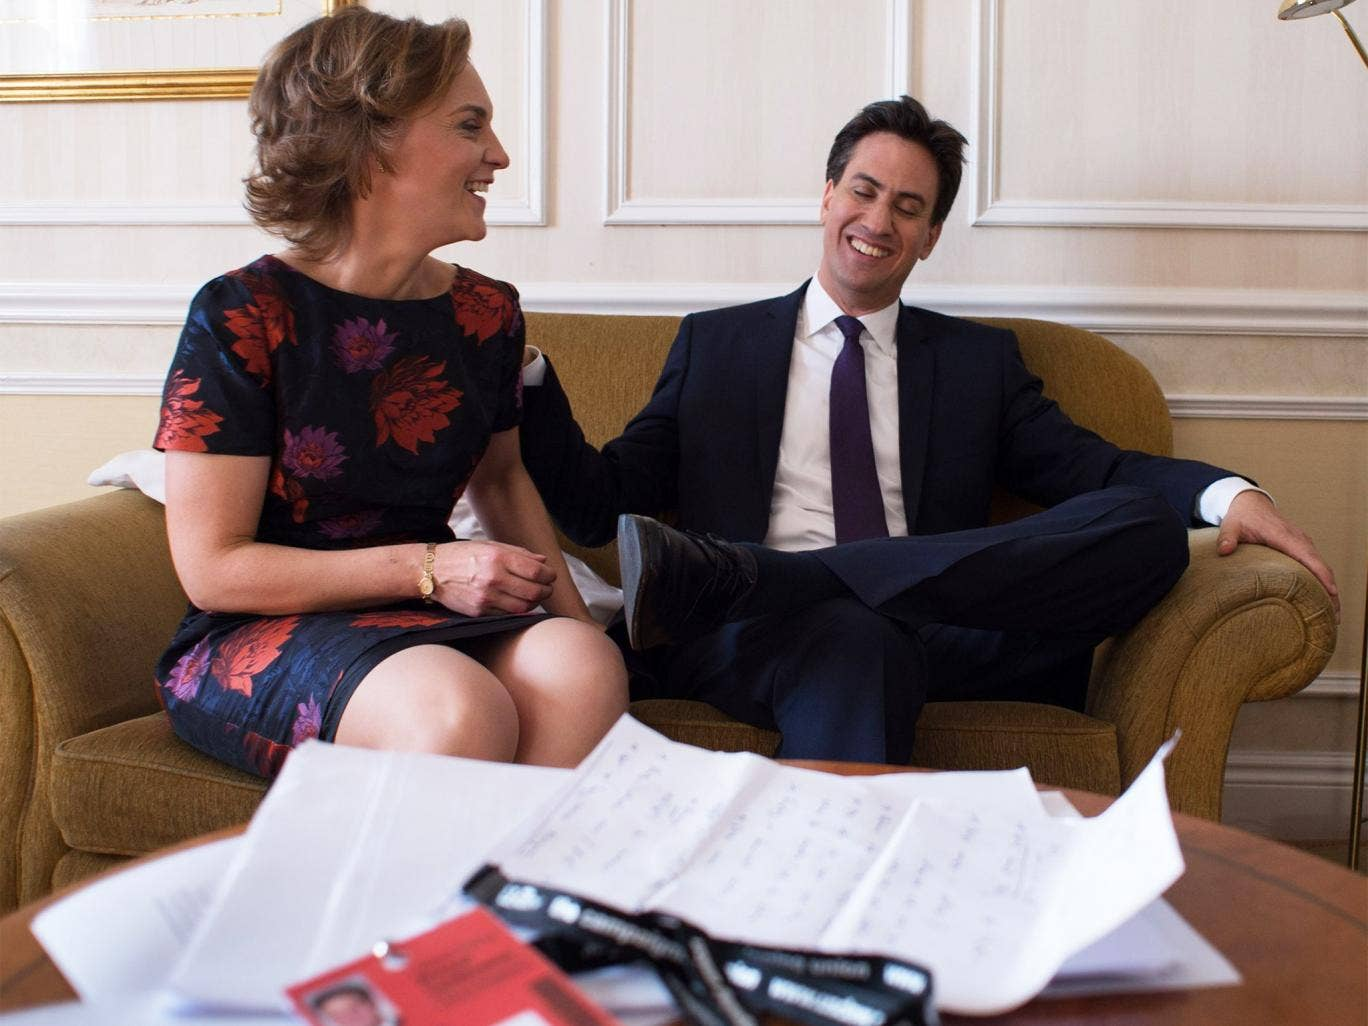 Justine Thornton with her husband, Labour leader Ed Miliband